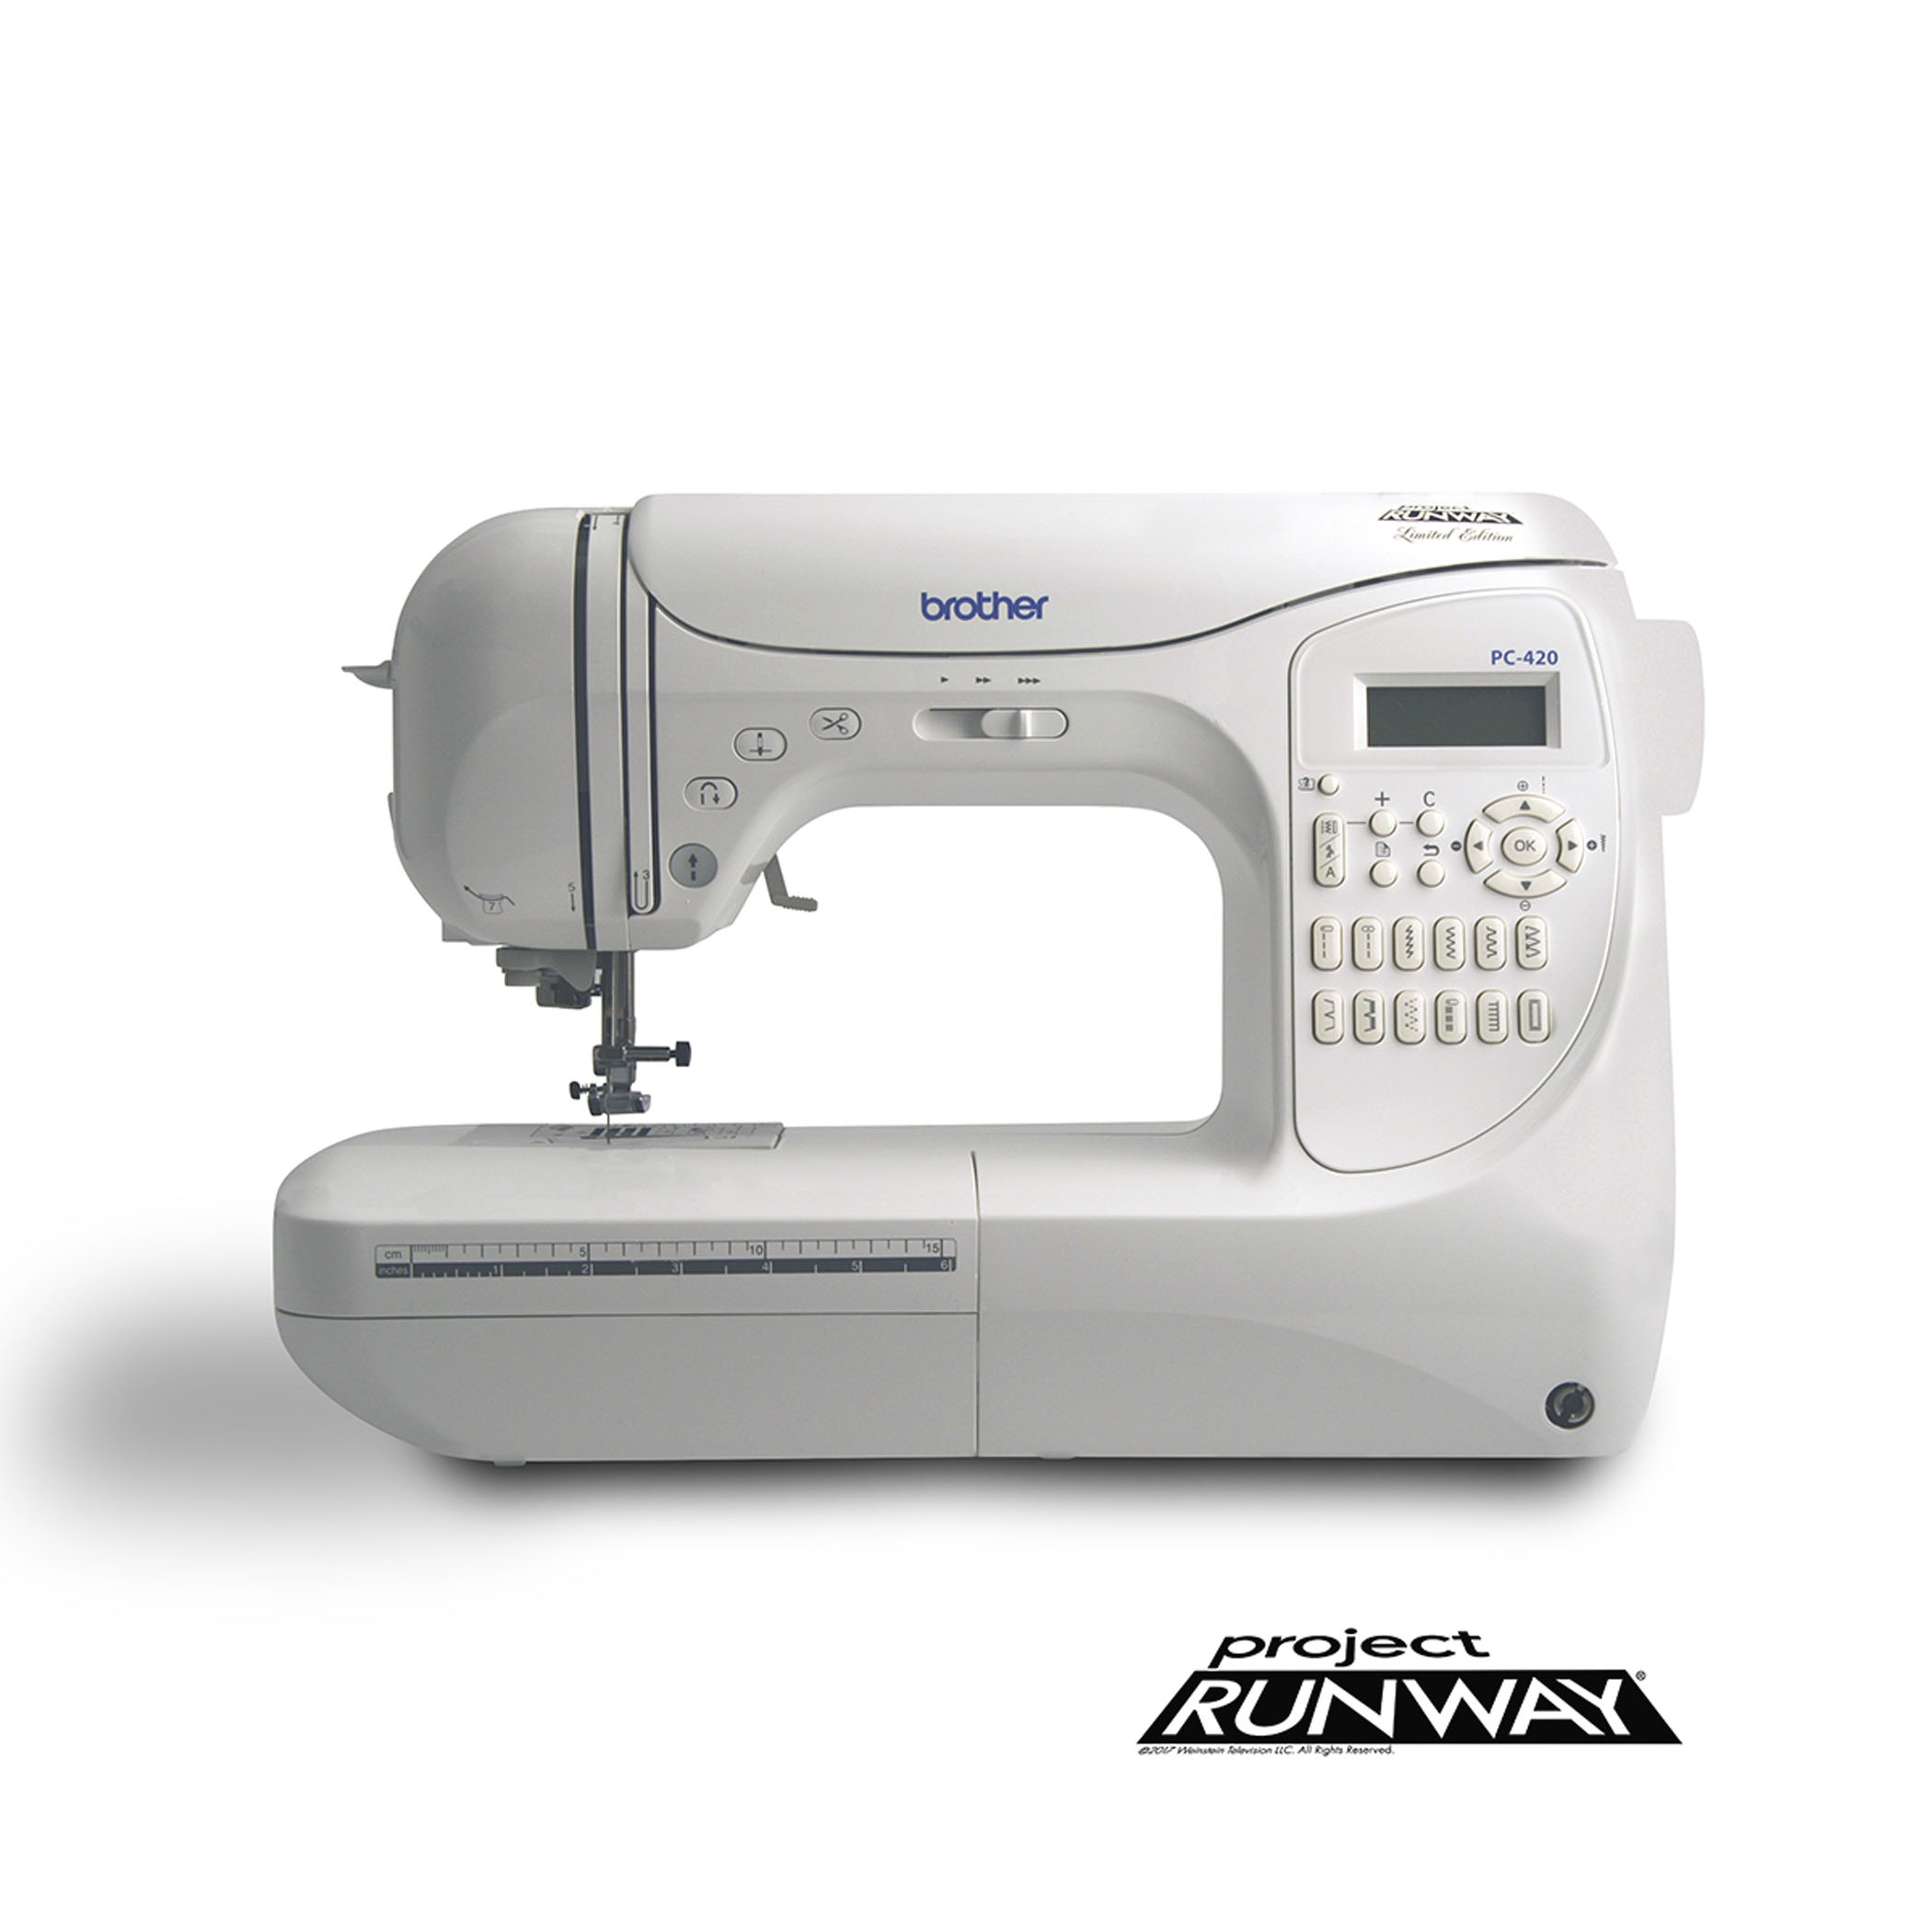 Brother Computerized 294-stitch Project Runway Sewing Machine PC-420PRW